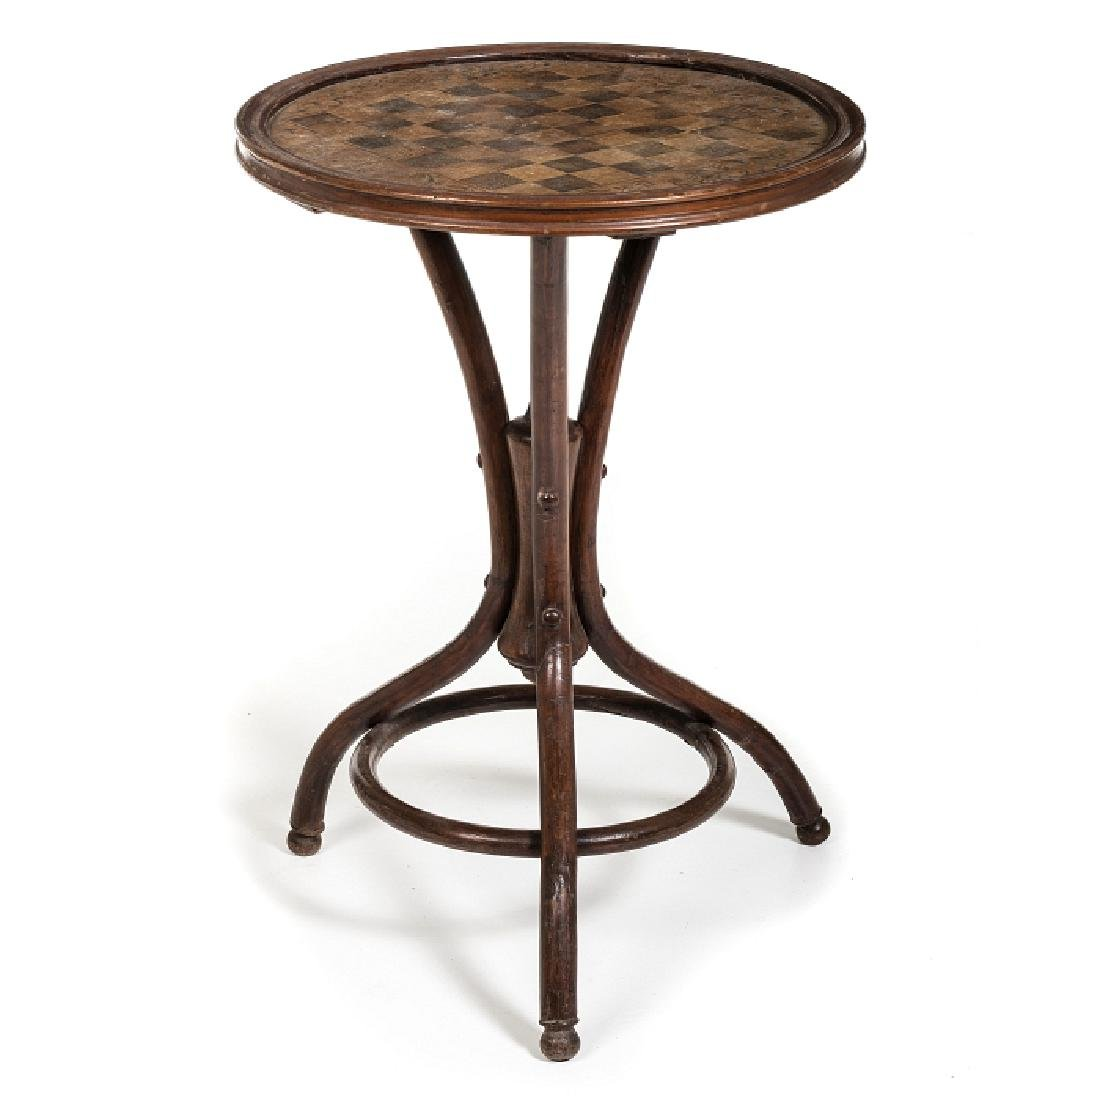 THONET (19th/20th) (Attr.) - Gambling table